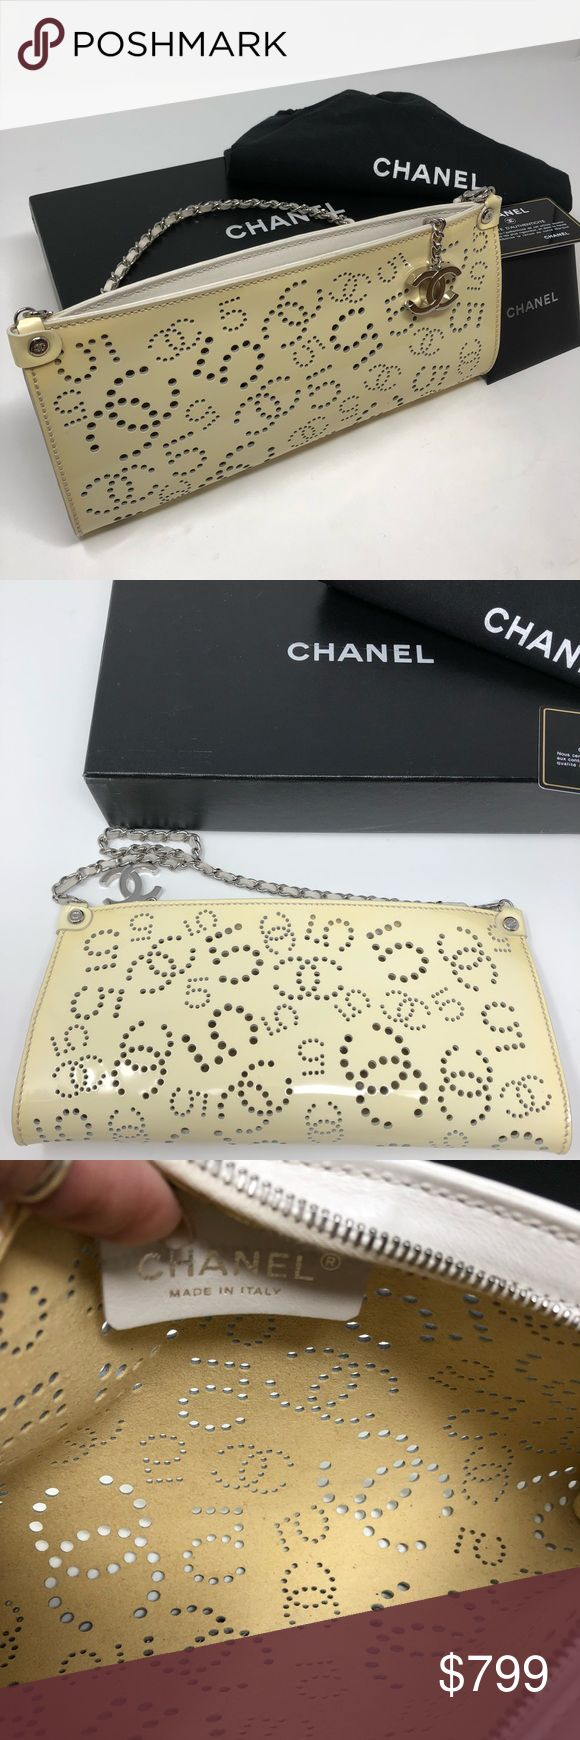 CHANEL |RARE| CREAM CLUTCH HANDBAG RARE- Timeless perforated cream handbag with removable straps to use are a clutch. Removable straps have leather weaved throughout a silver chain. Nice weight. Lobster clasp attachment. Bag has perforated 5's and CC's throughout. Internal bag is clean. External bag has a nic. Purchase comes with authentication, box, dust bag, CoCo Chanel Sticker and History. Authentication card and box. CHANEL Bags